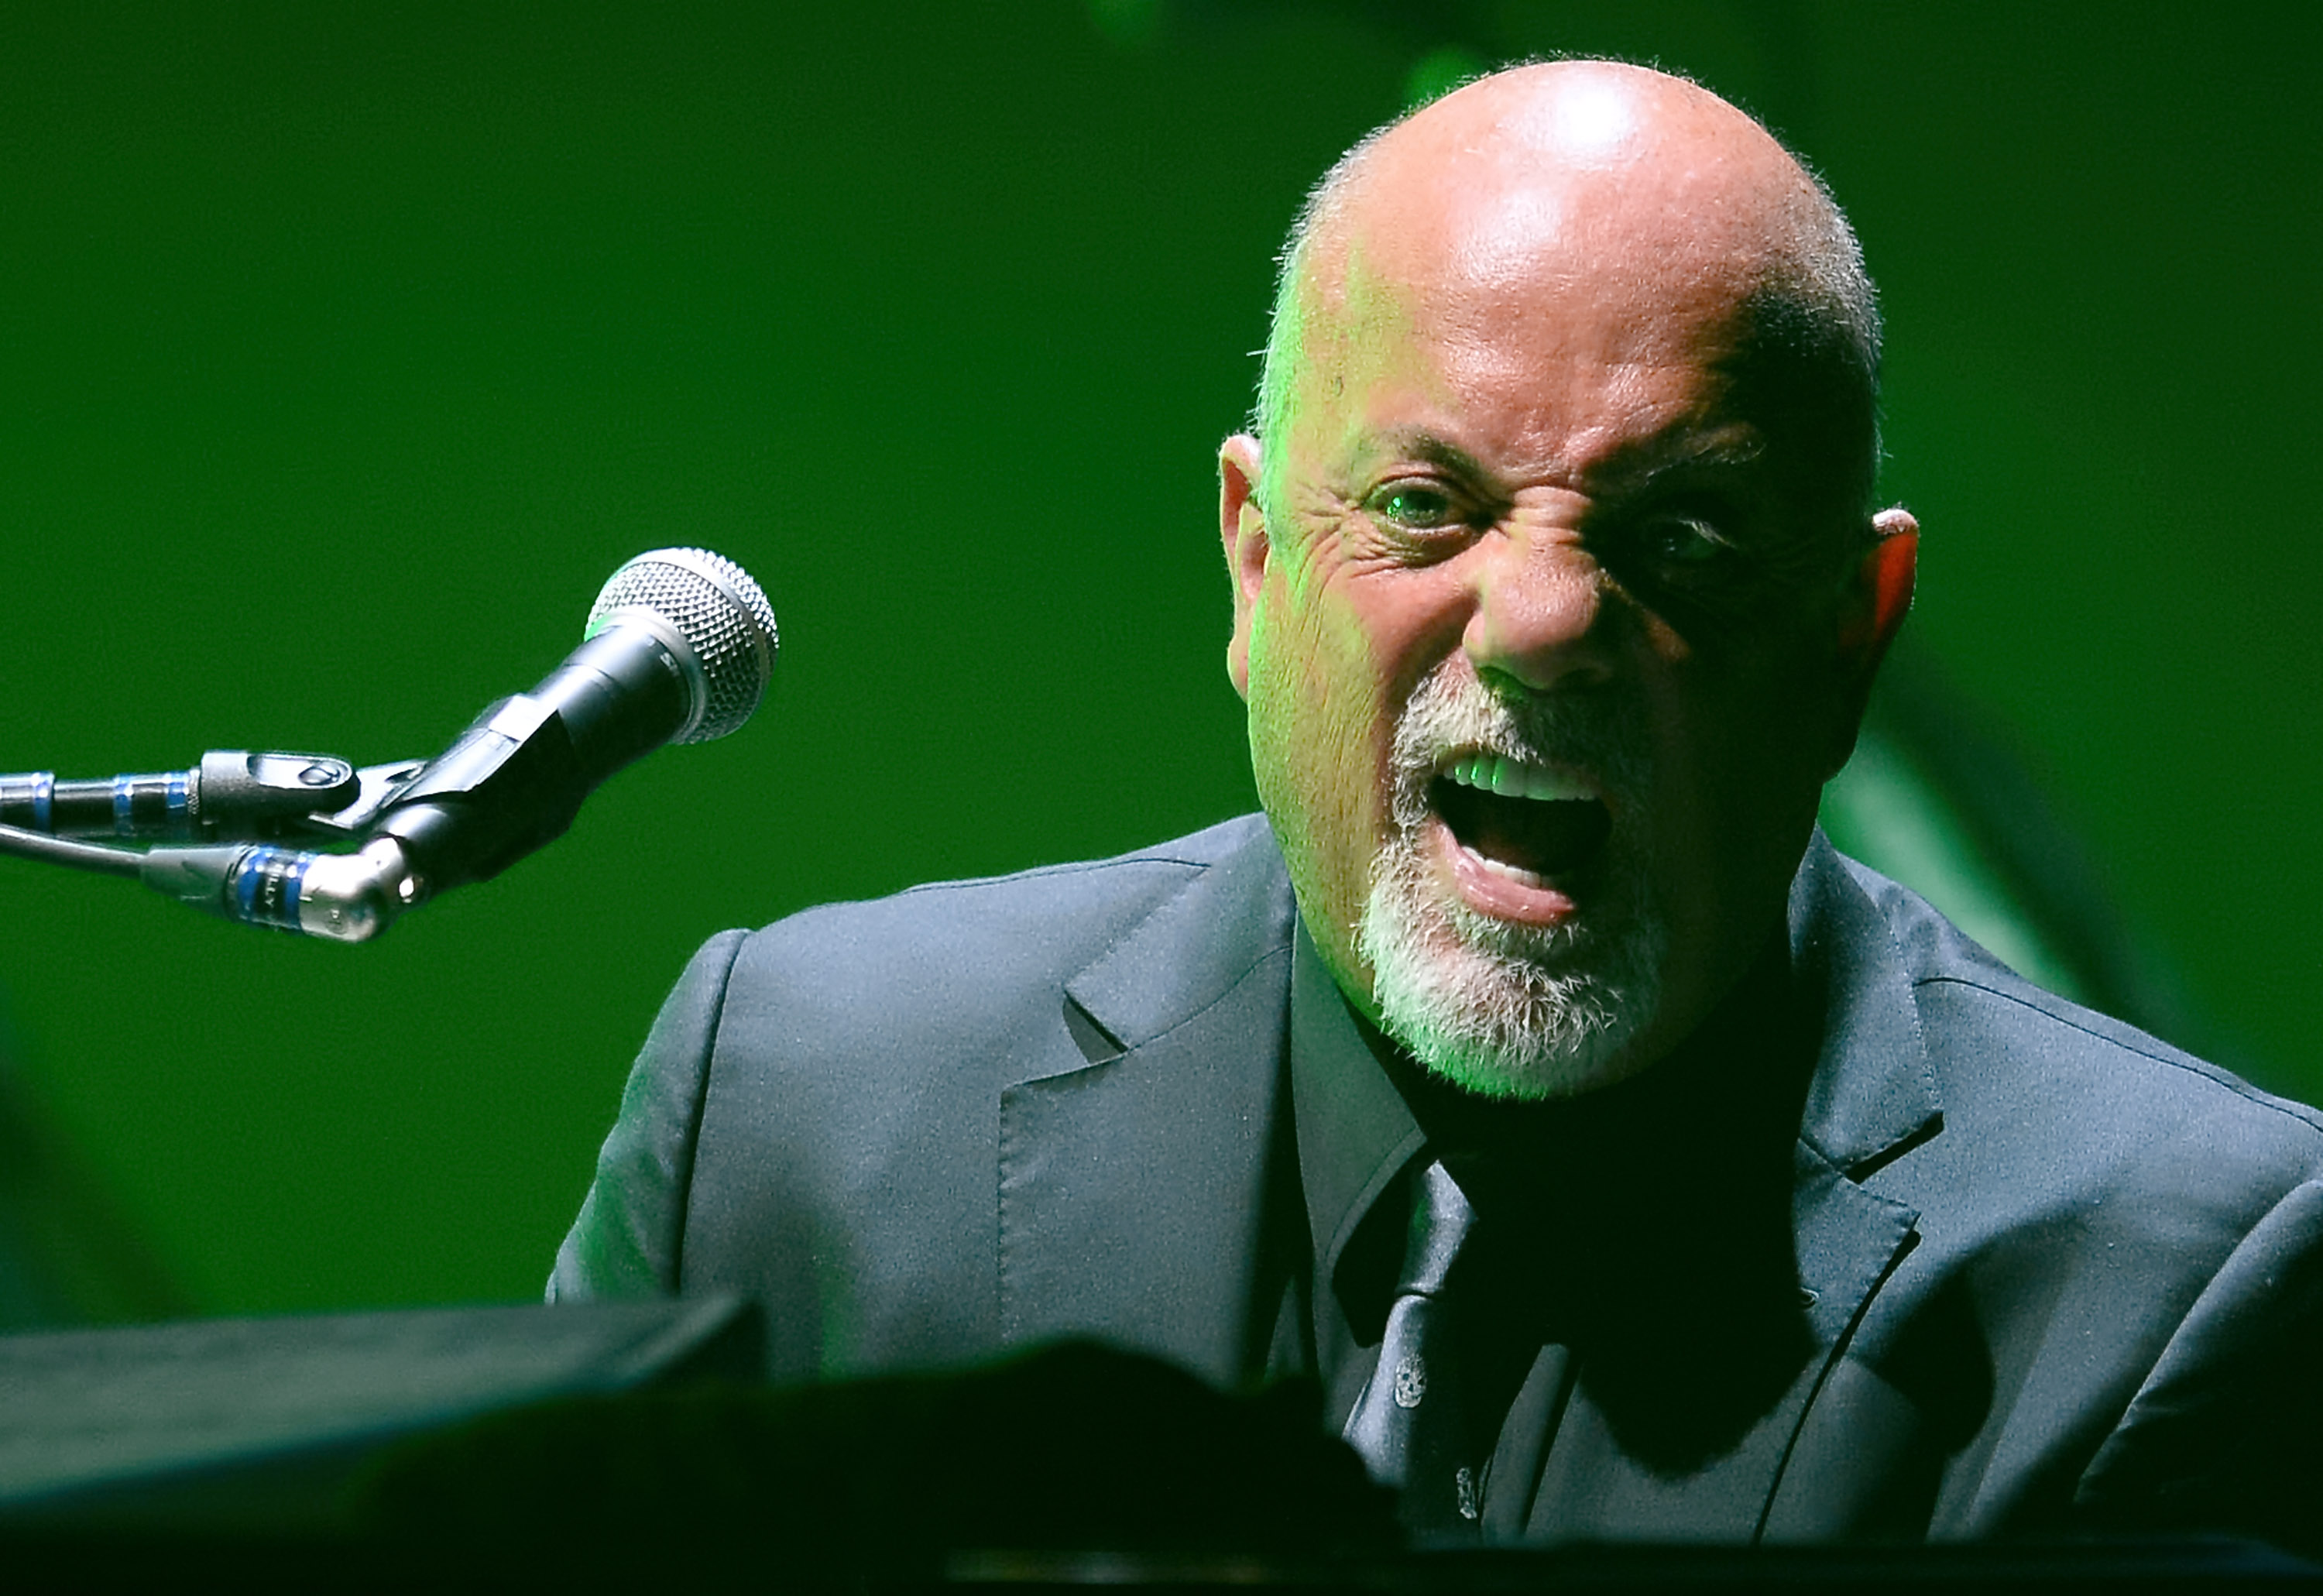 Singer/songwriter Billy Joel performs at the MGM Grand Garden Arena